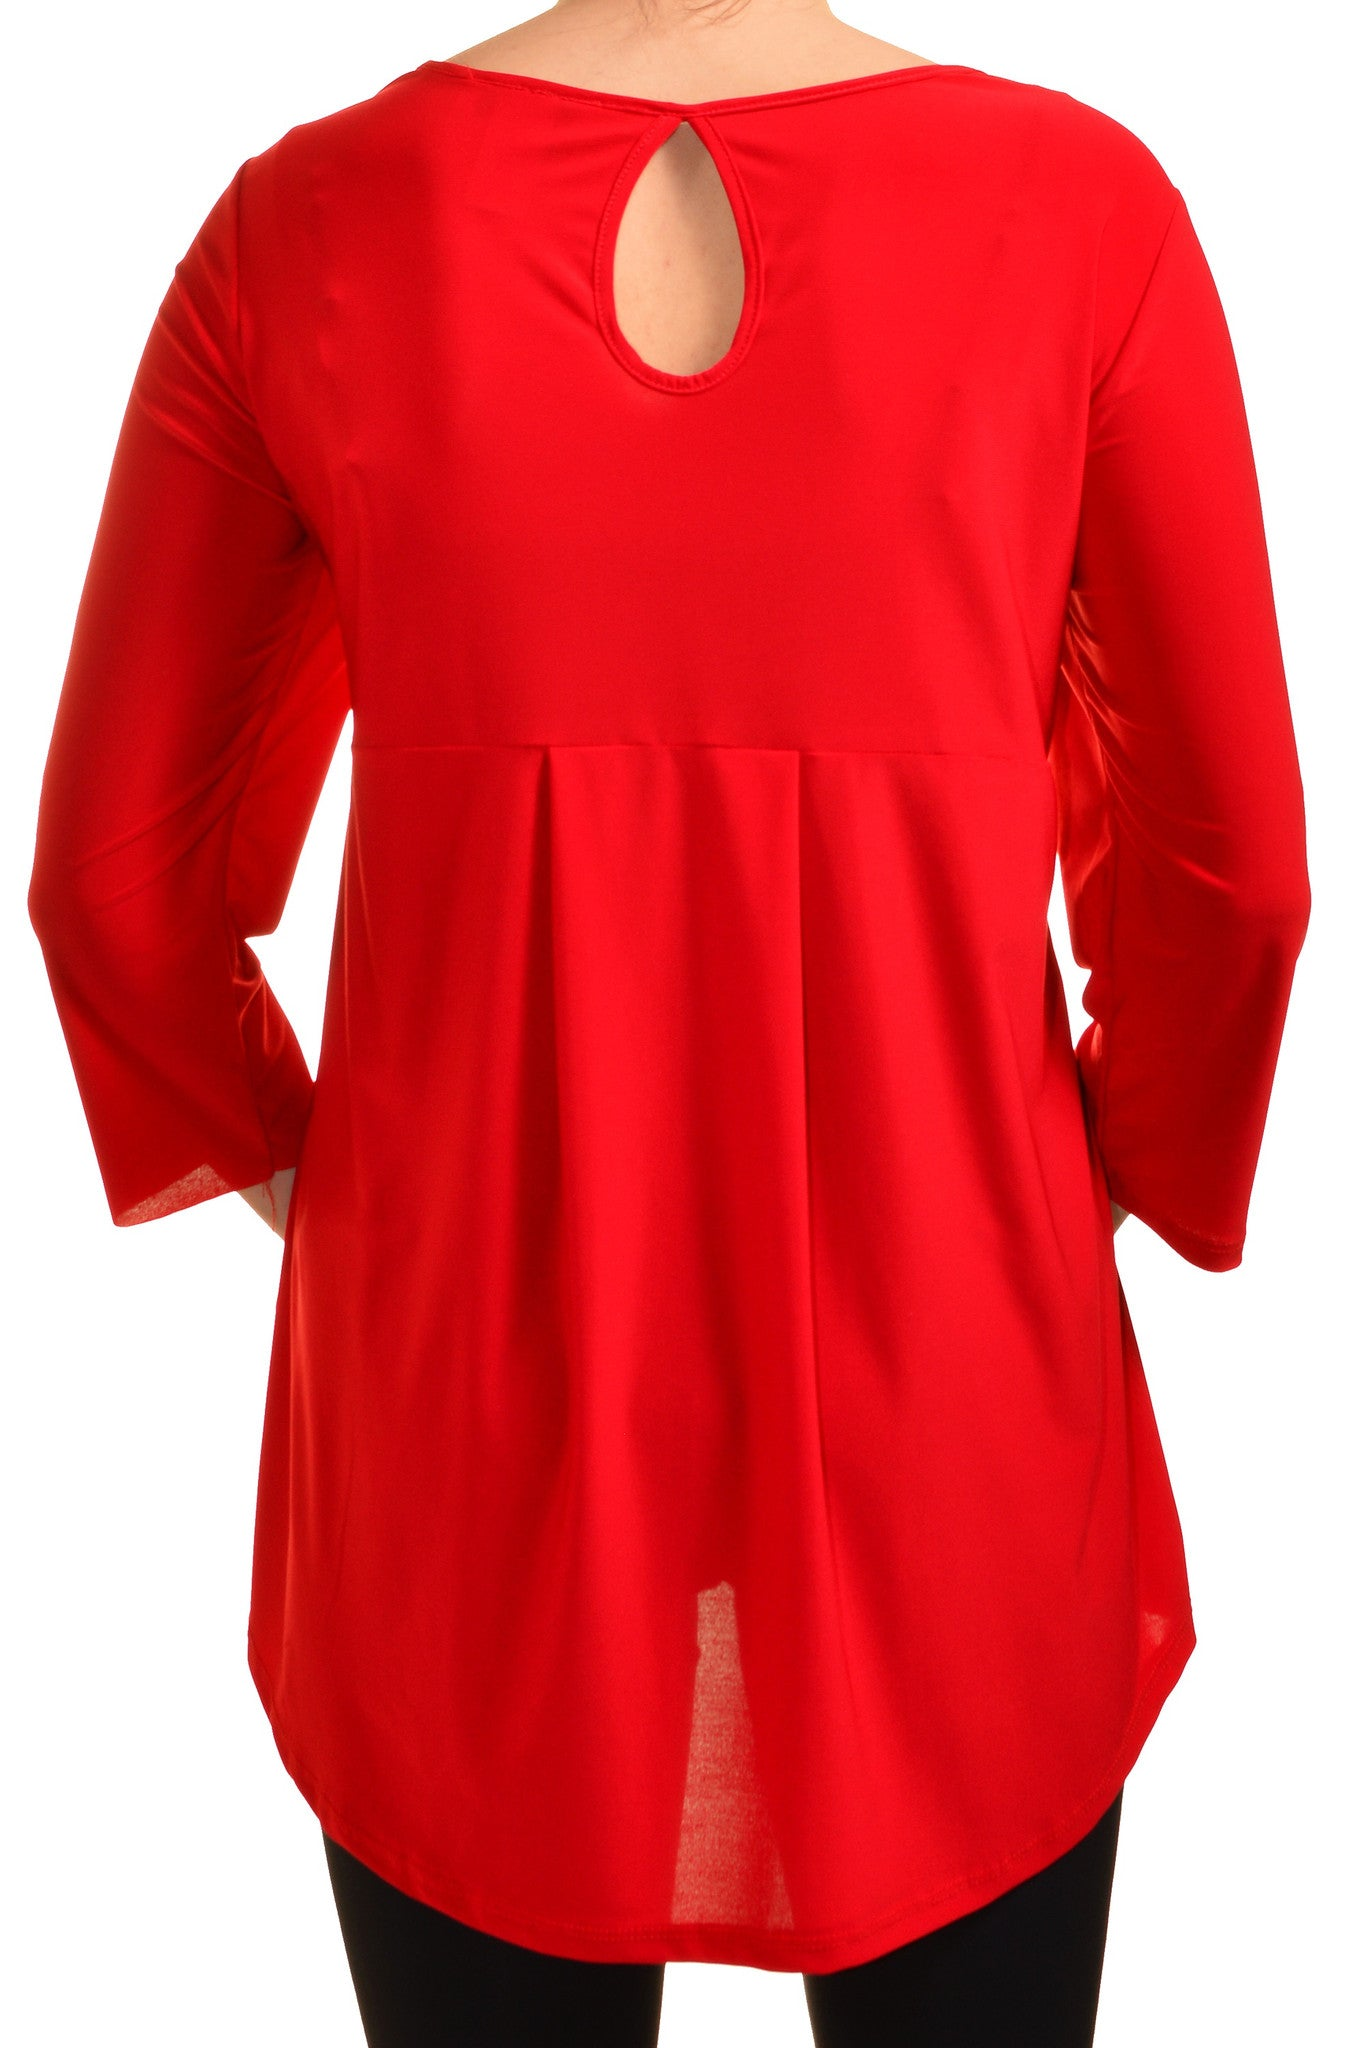 Avital Plus Size High Low Keyhole Back Shirt (Red),Shirts,Avital - Discount Divas